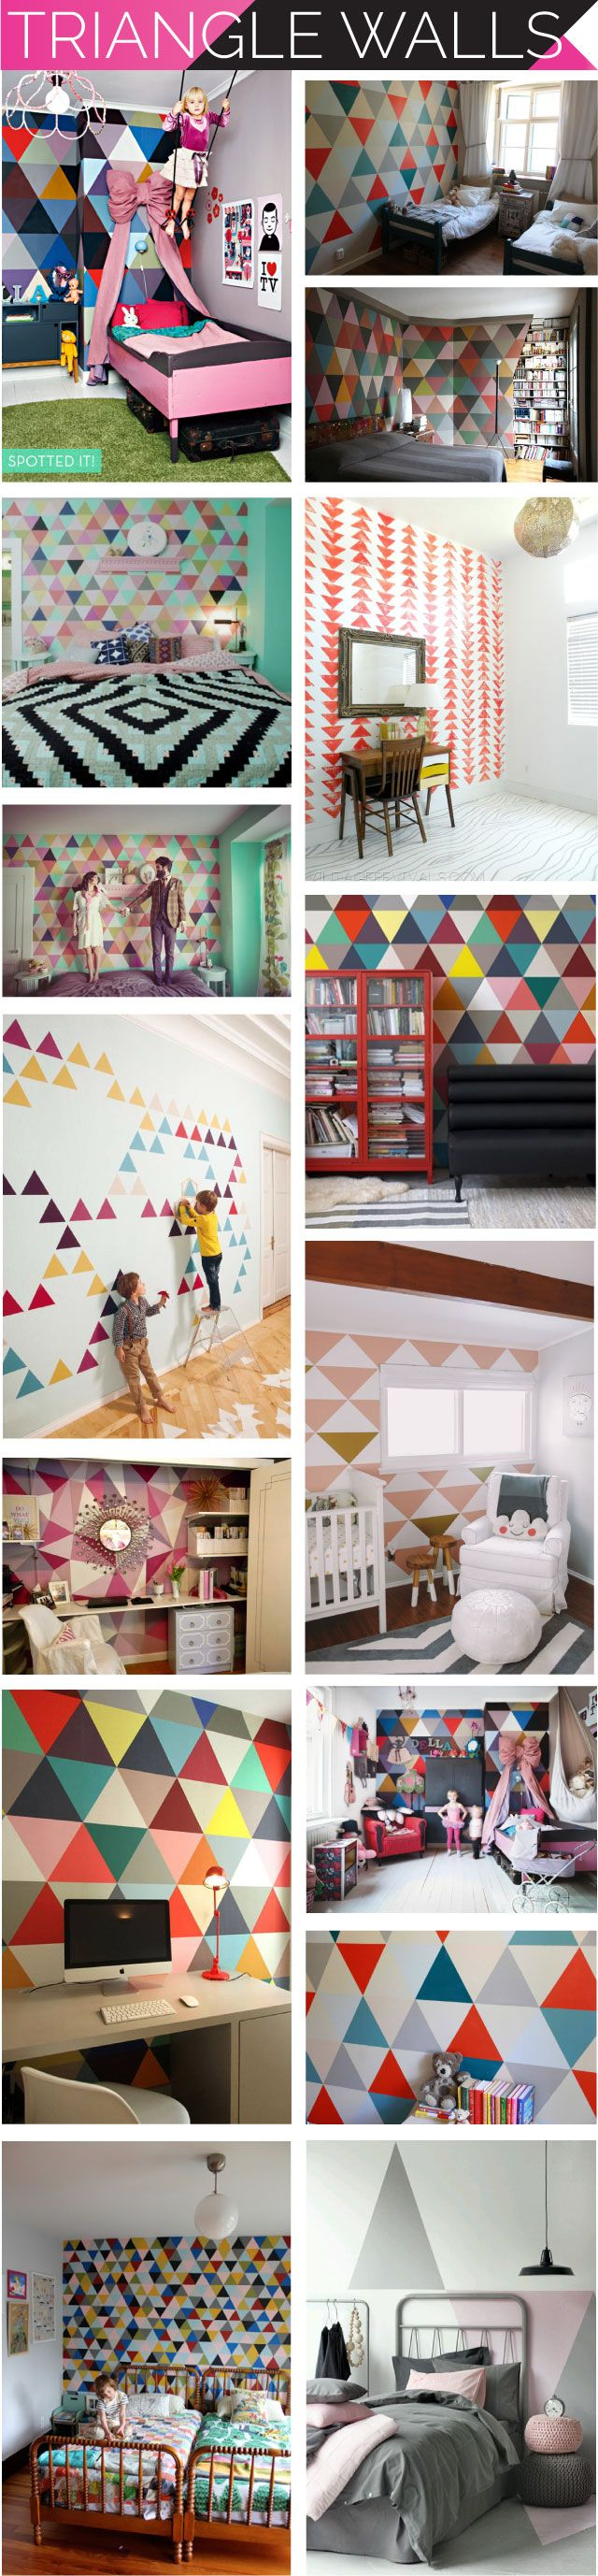 Best 25 Wall wallpaper ideas on Pinterest Silver glitter